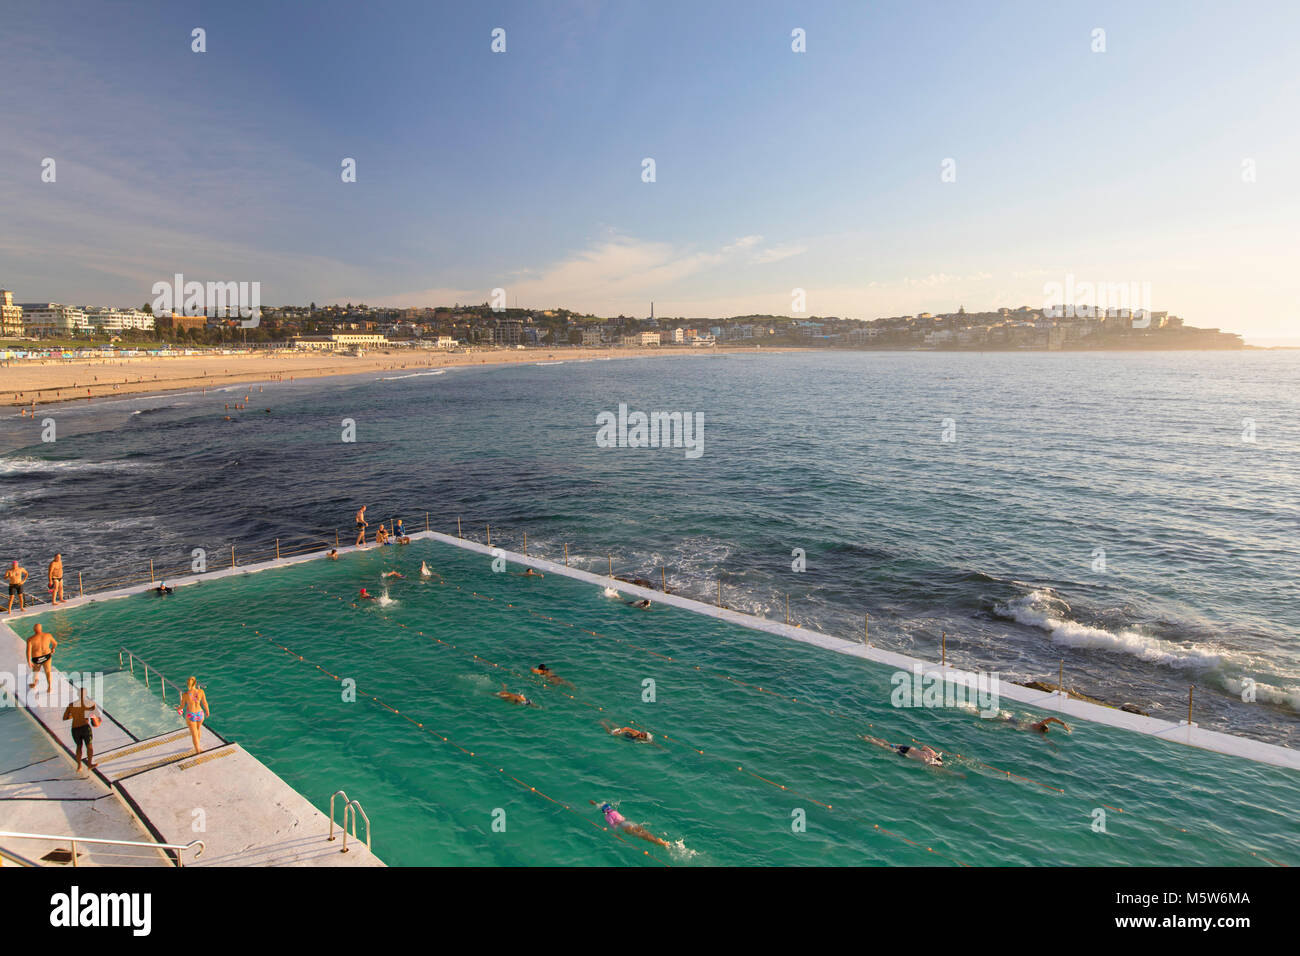 Bondi Icebergs swimming pool, Bondi Beach, Sydney, New South Wales, Australia - Stock Image